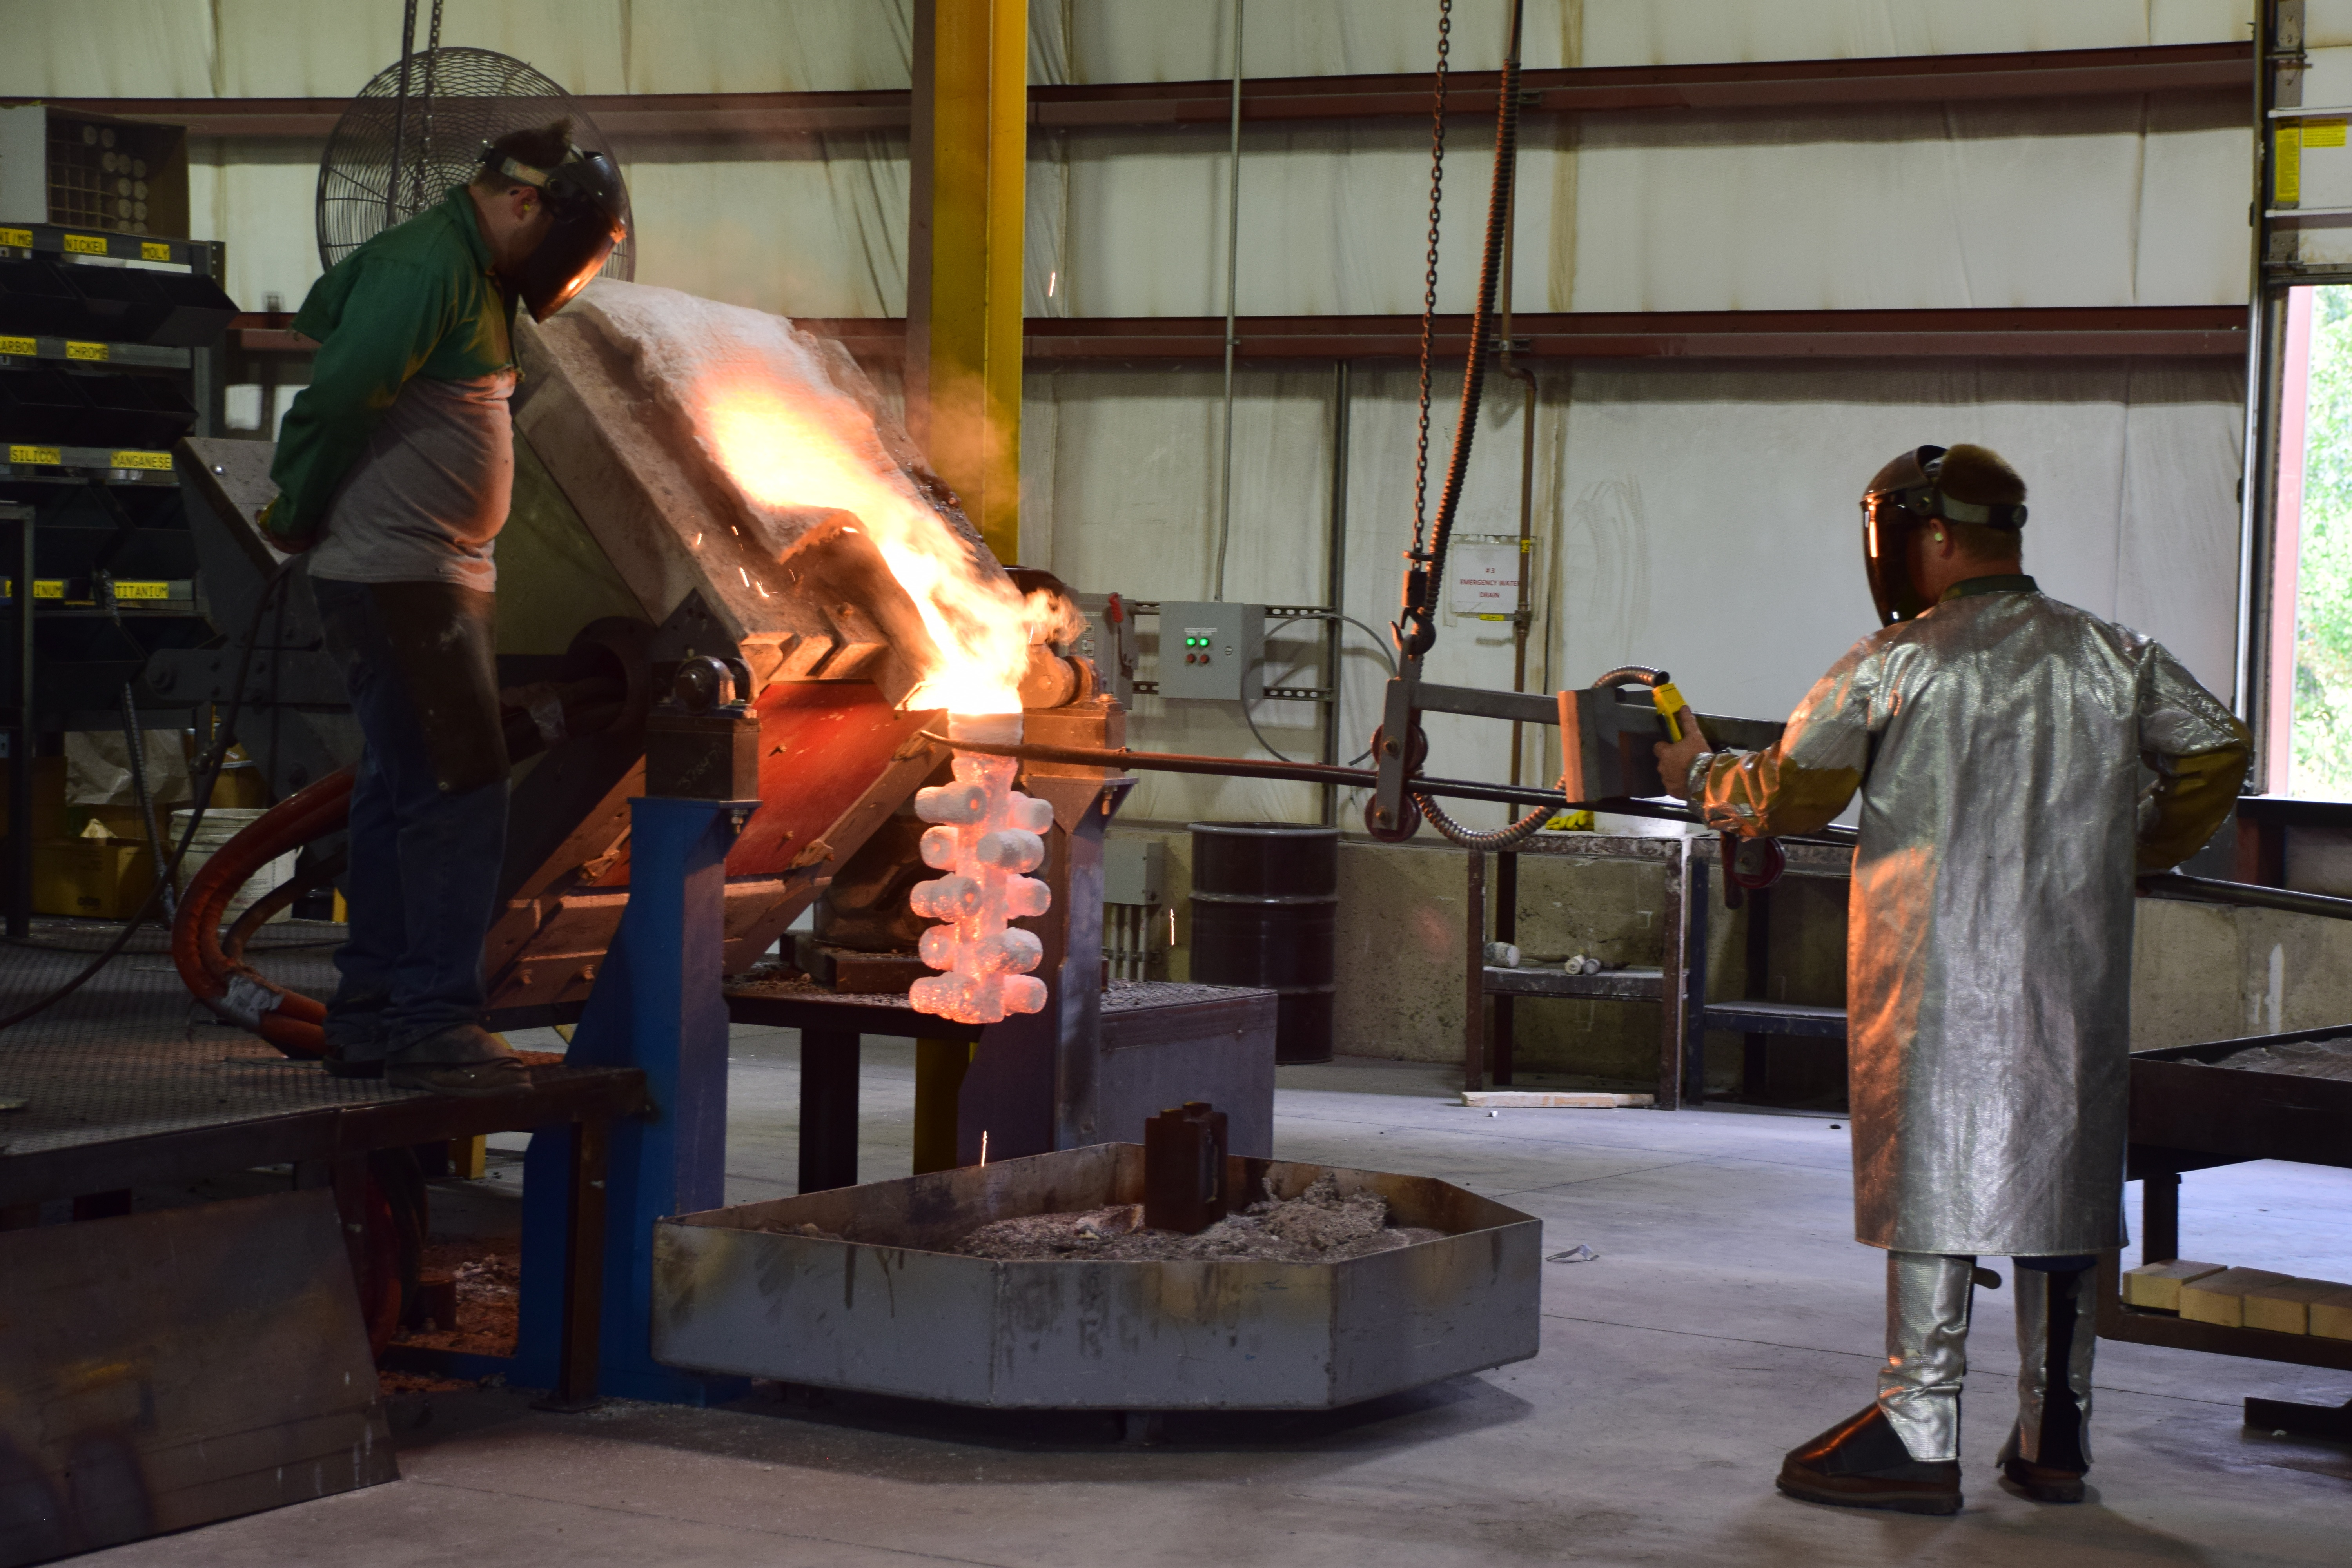 Investment Casting - pouring molten metal into a pre-heated mold